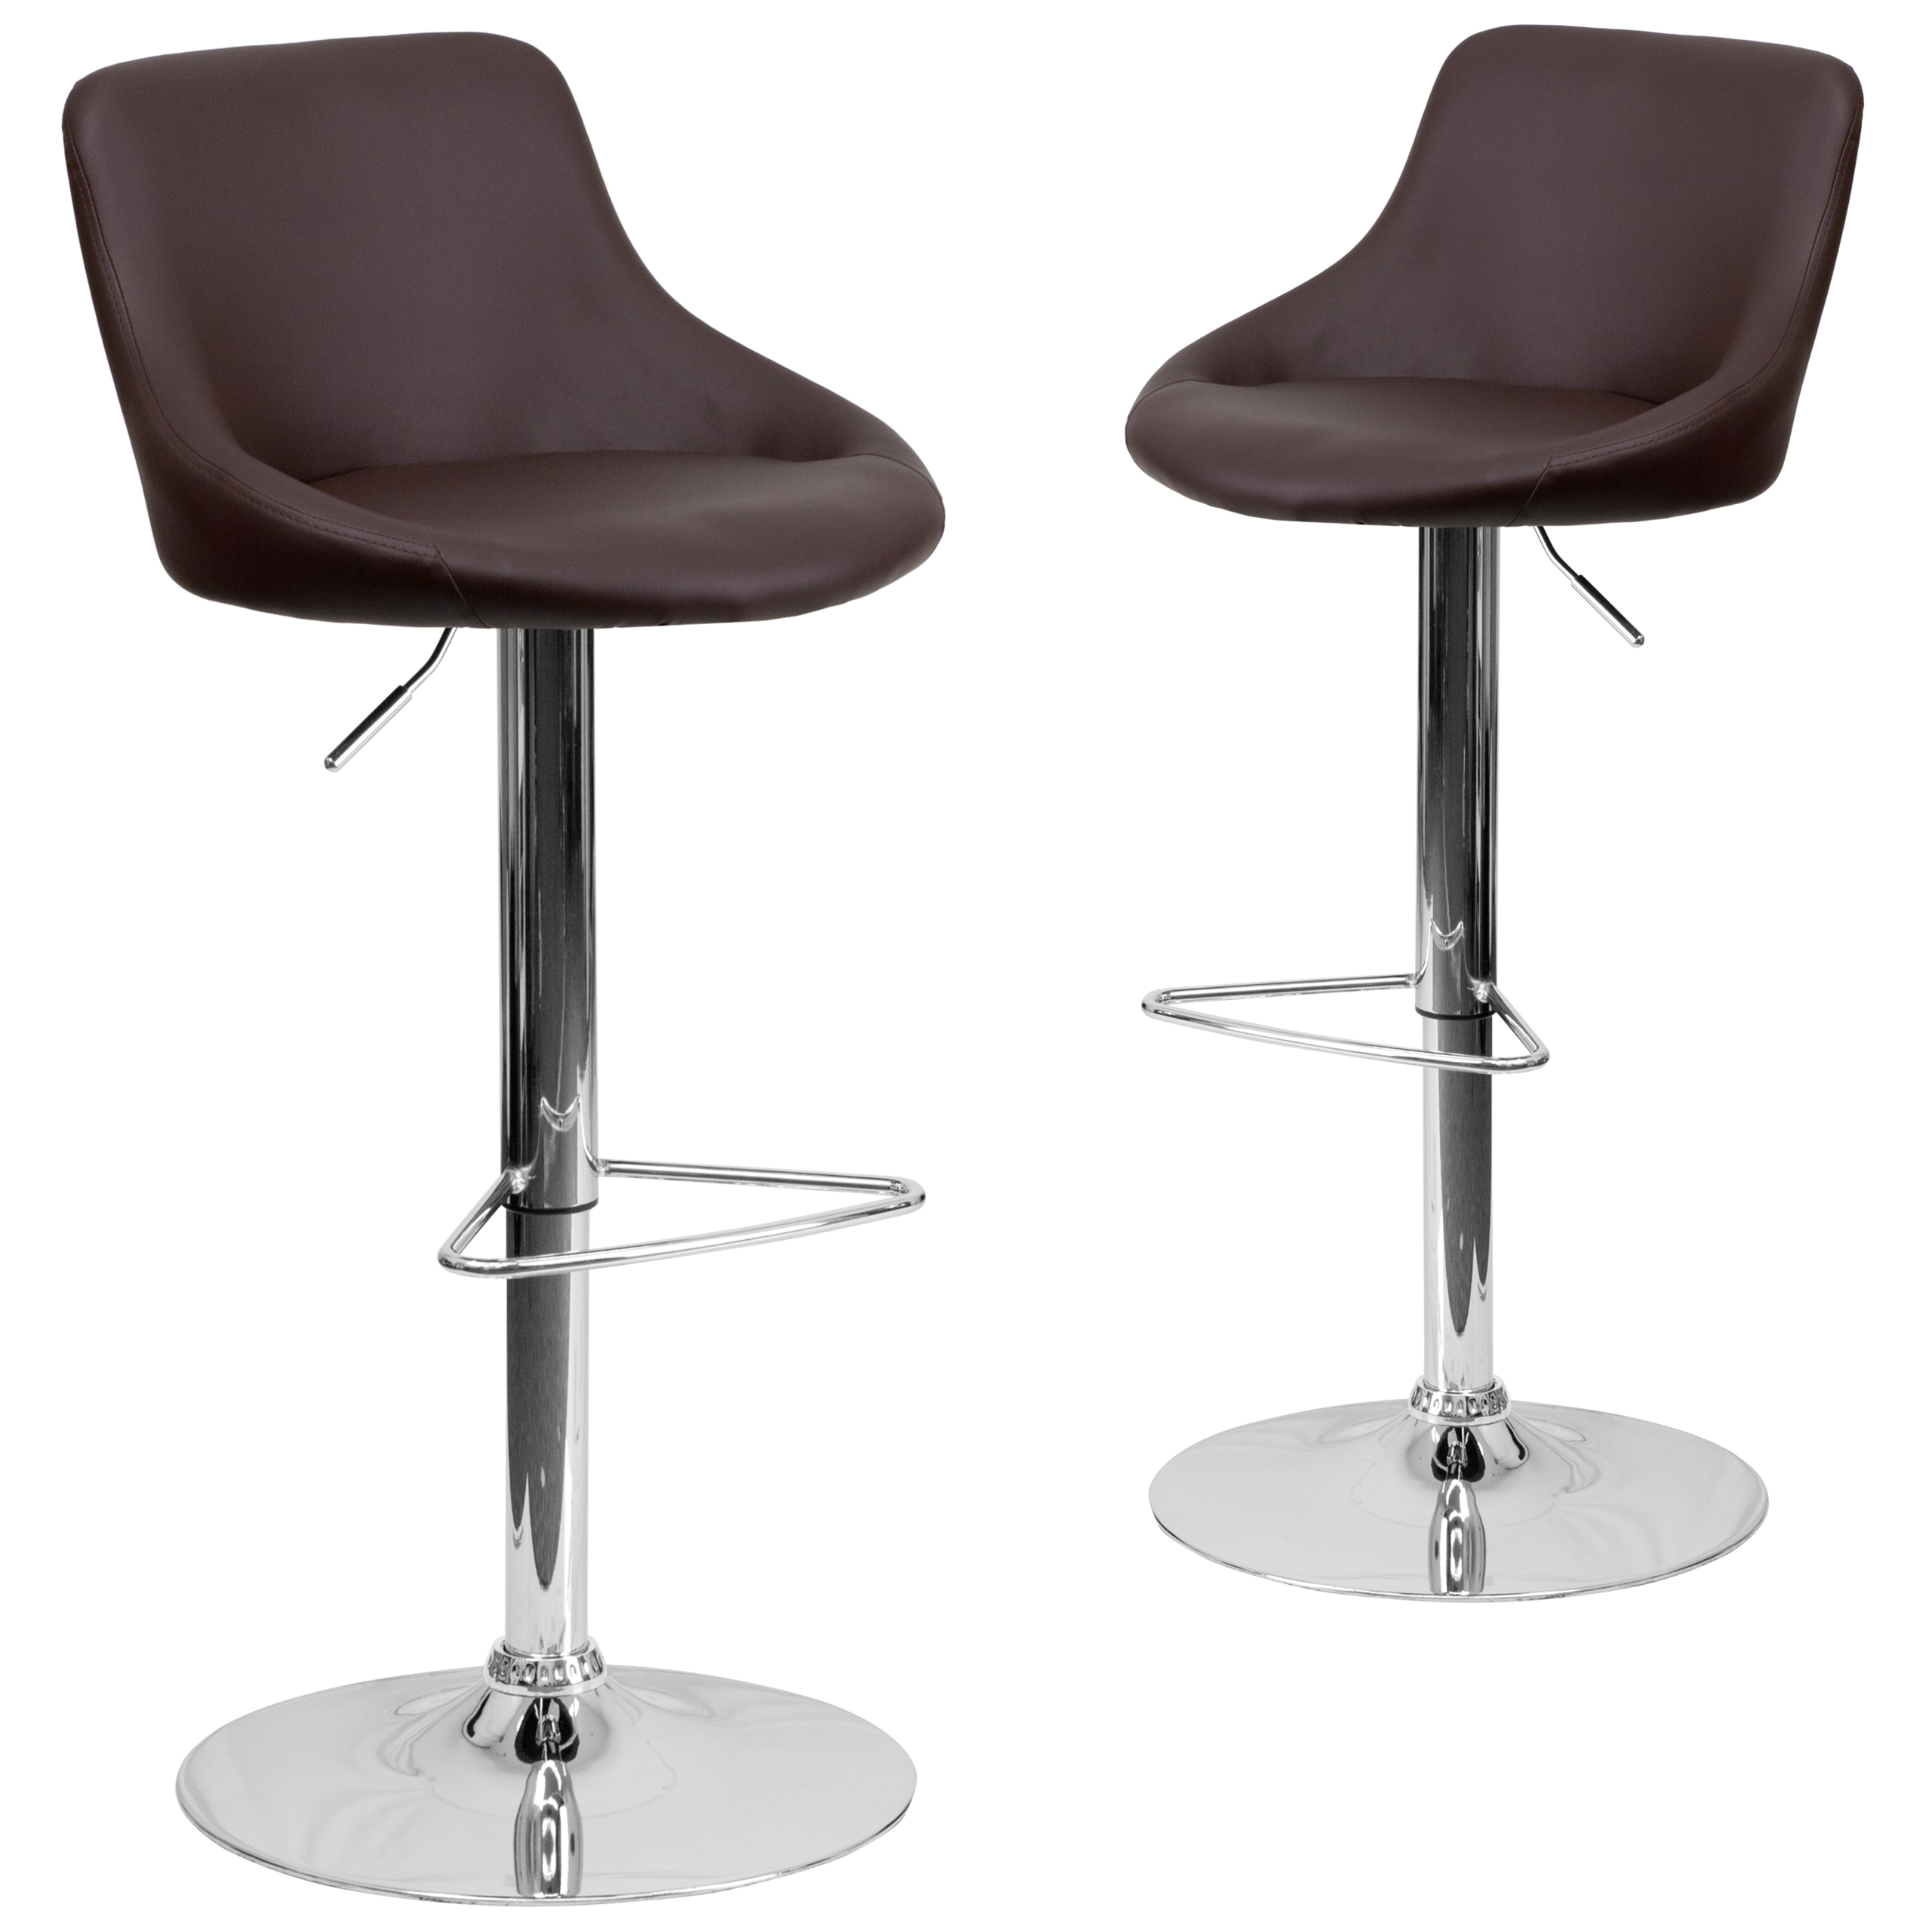 Designer Bucket Seat Swivel Home Office Kitchen Bar Stools Chairs 6 Colors  #82028